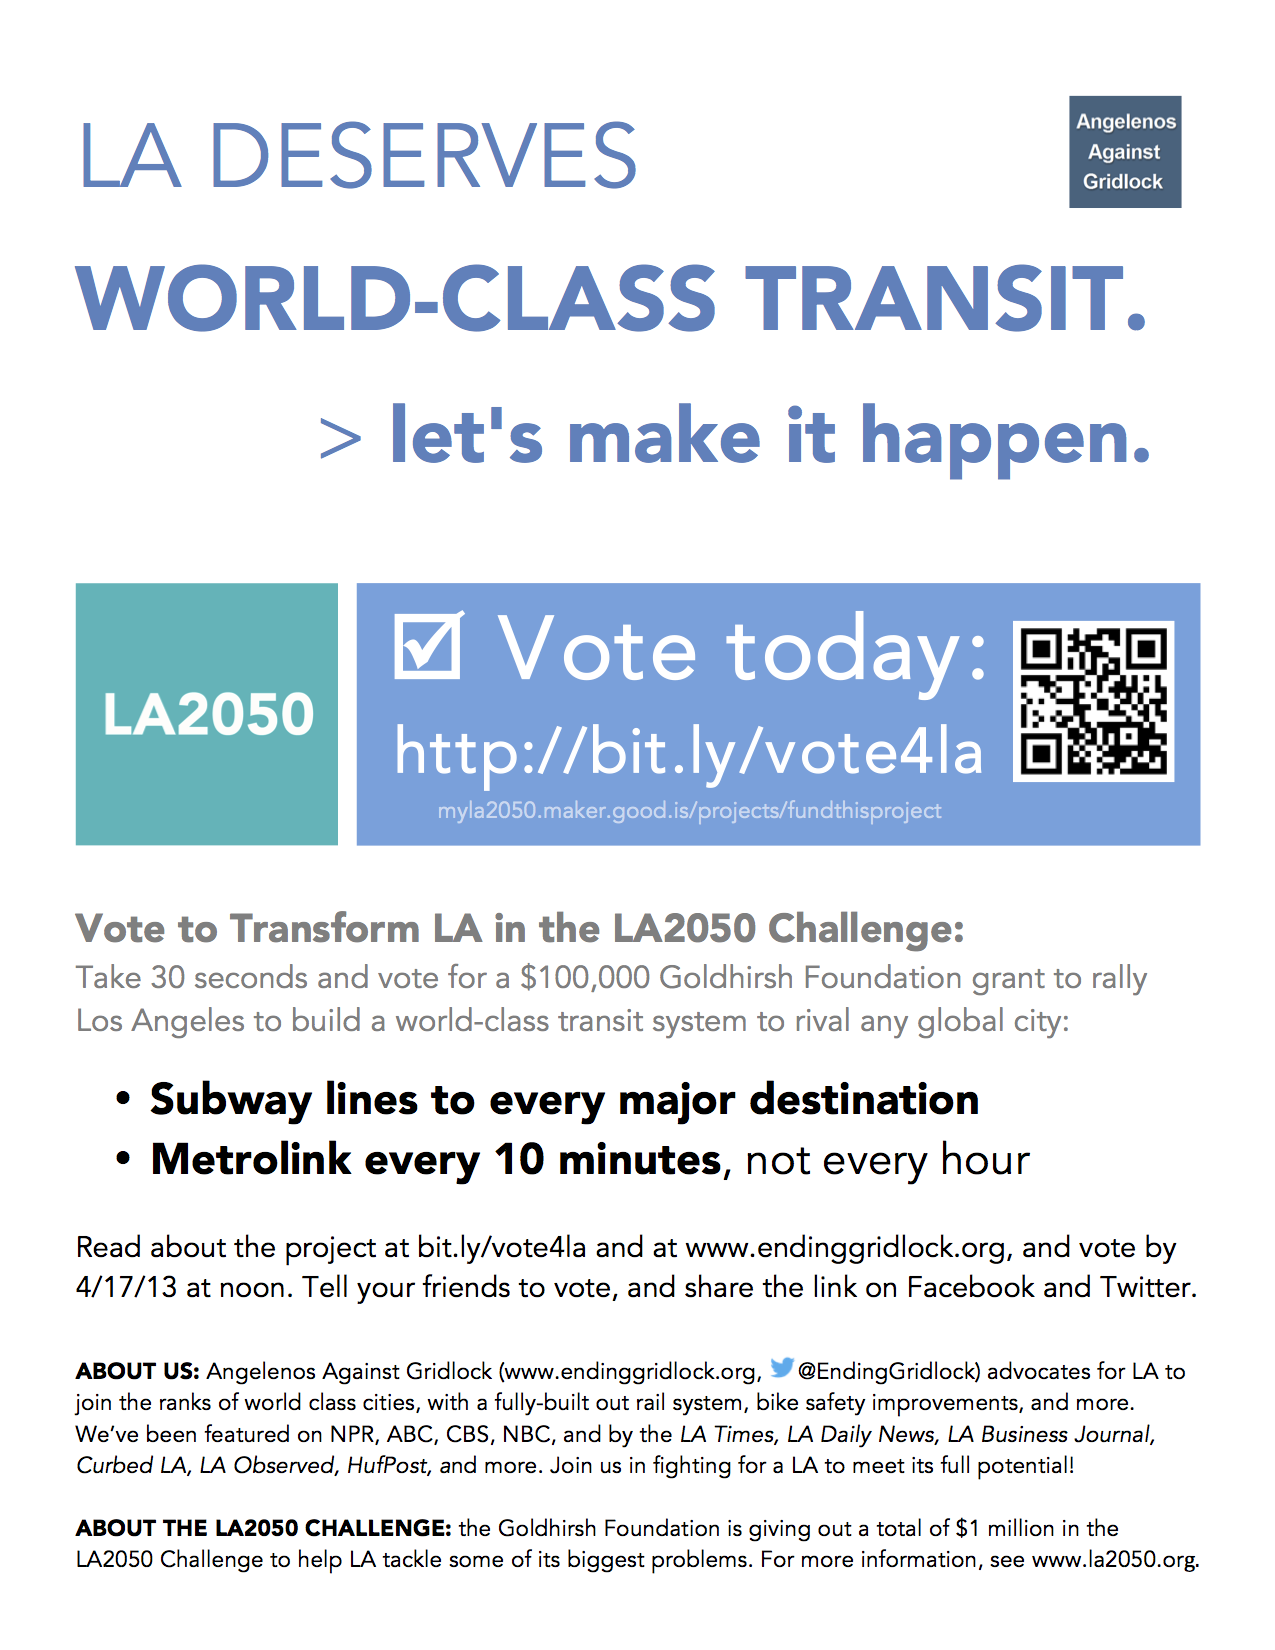 Vote for us in the LA2050 Challenge! Share this flyer with friends and colleagues. Here's a downloadable PDF / Scribd document that you can email or embed.